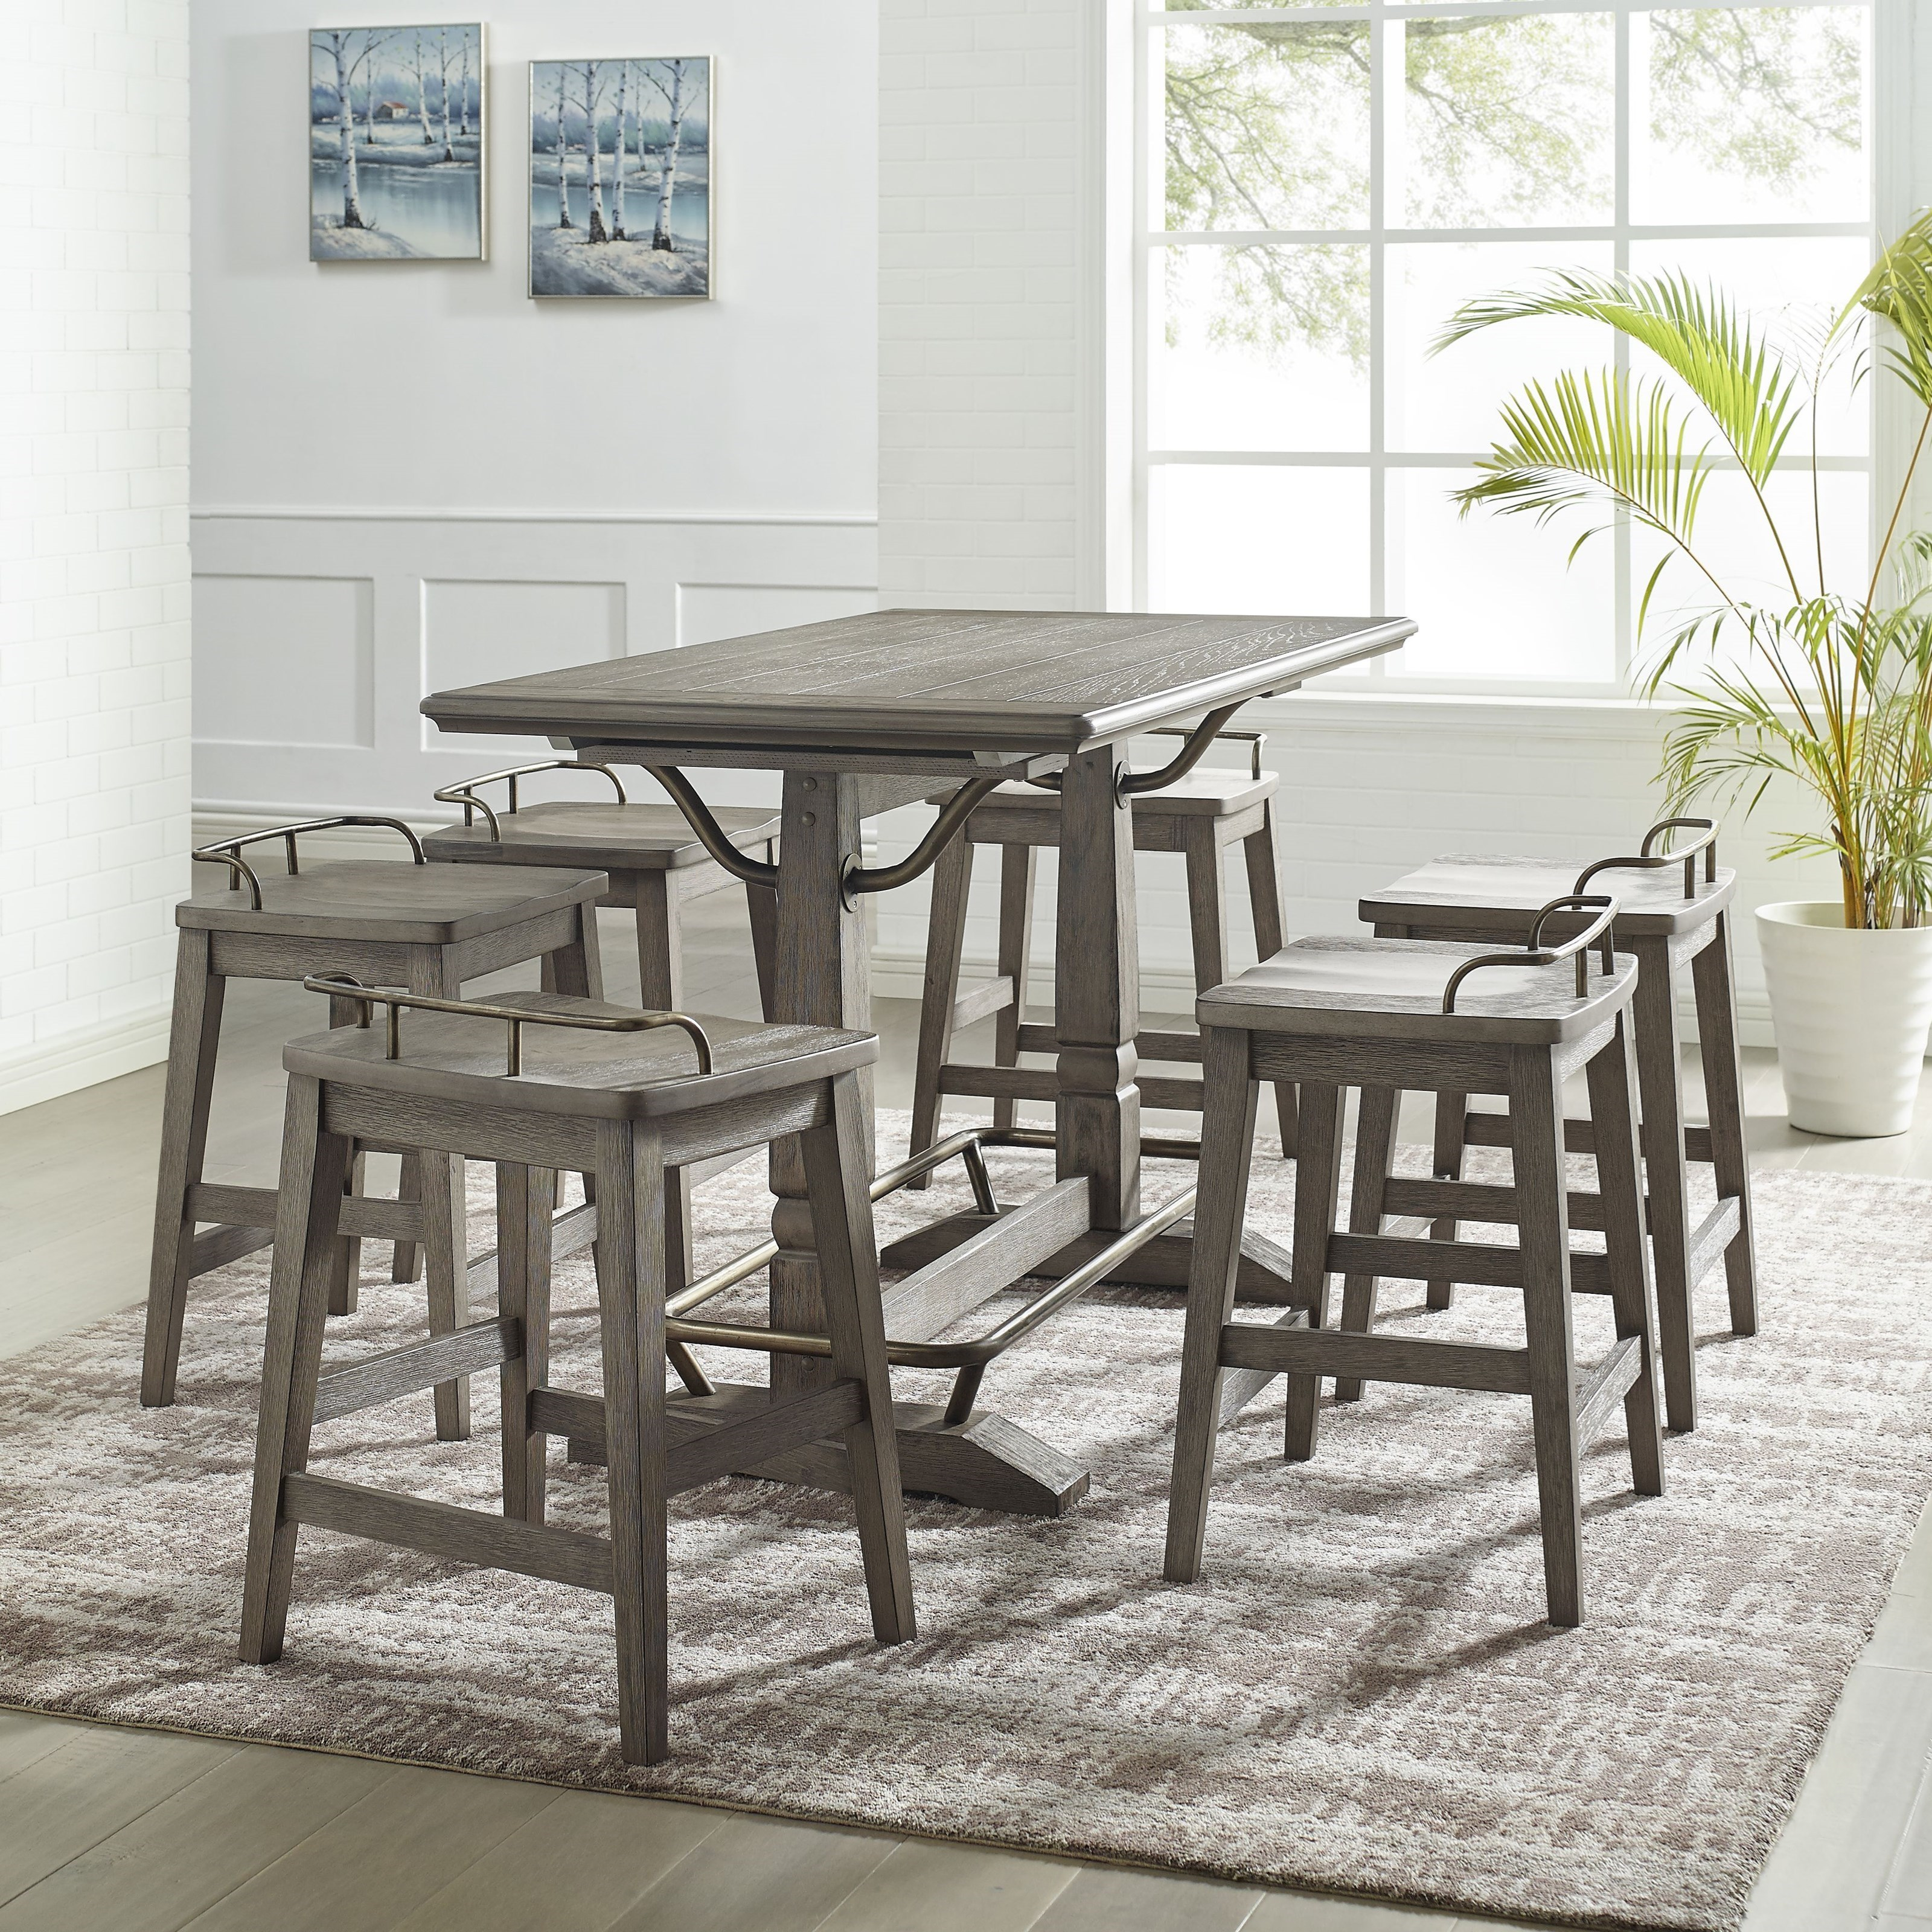 Ryan 7-Piece Counter Height Table and Stool Set by Steve Silver at Wayside Furniture